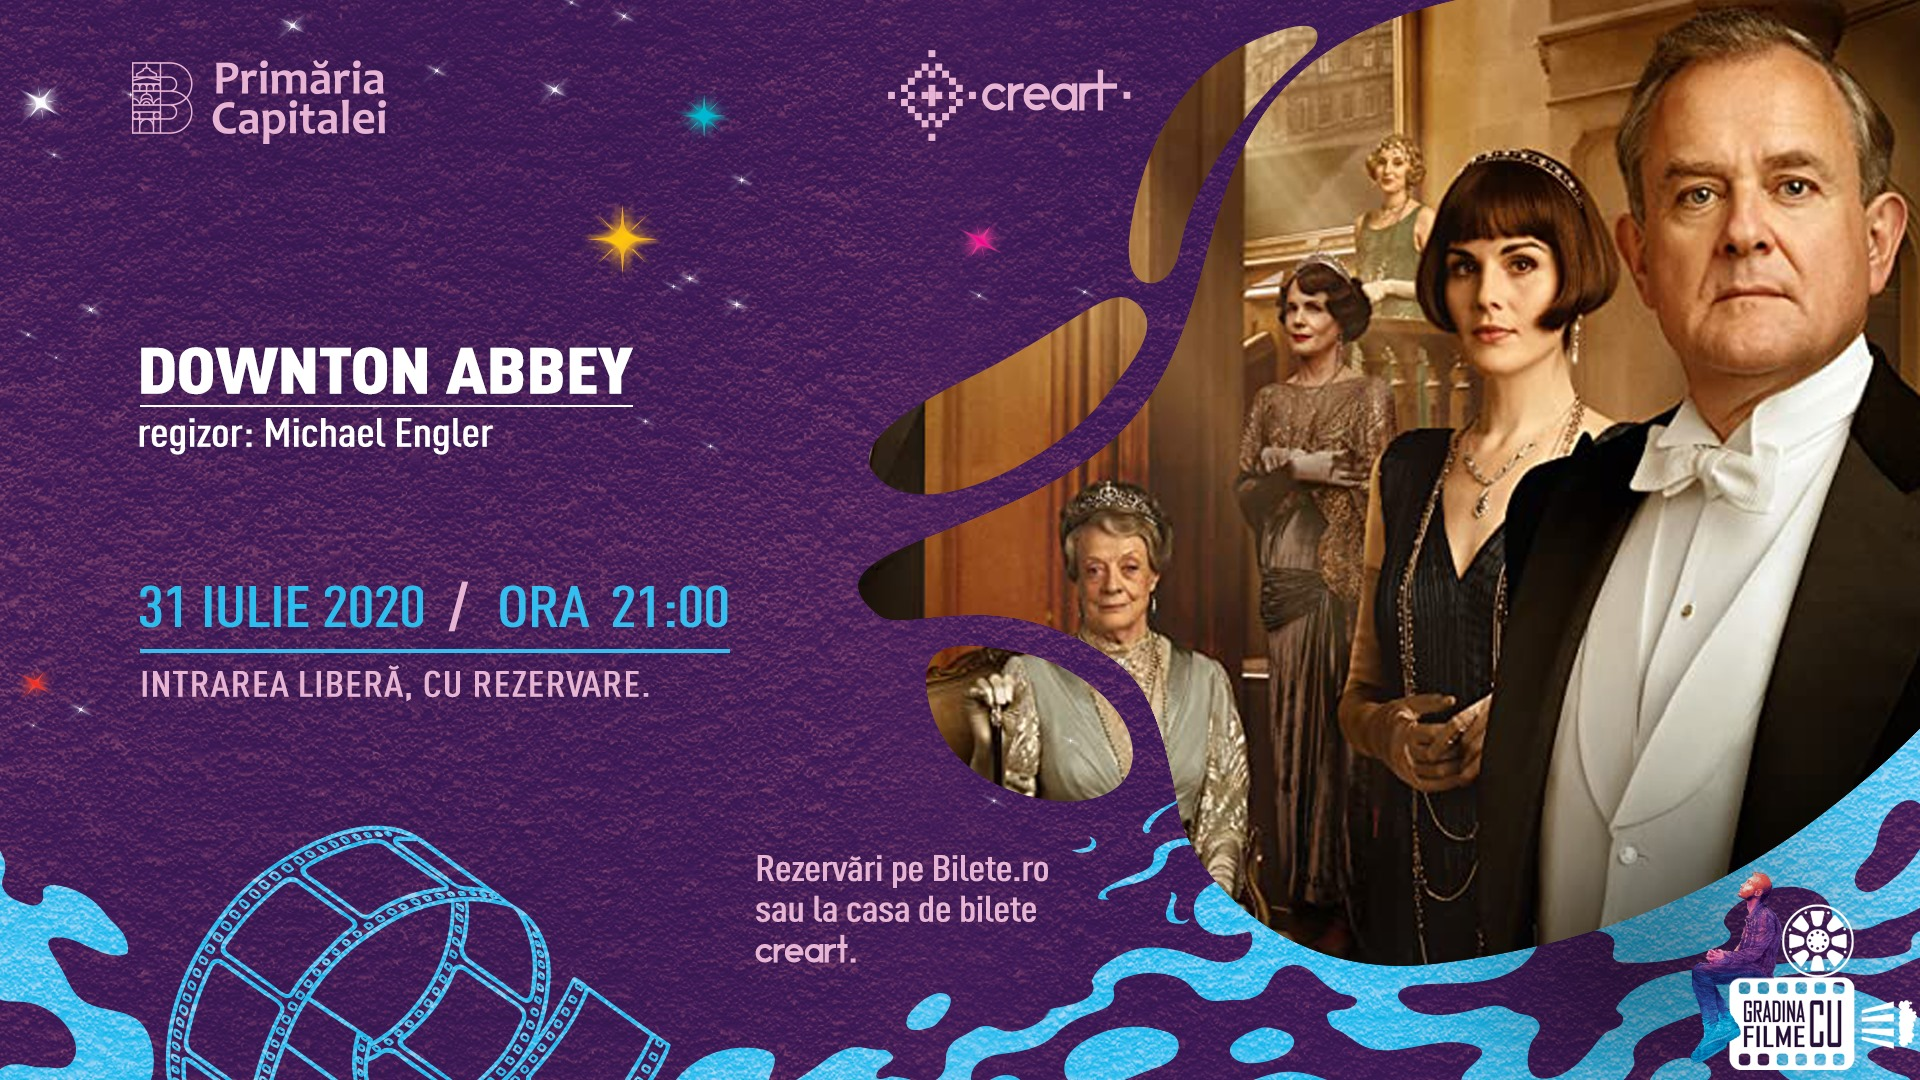 evenimente weekend 31 iulie-2 aug proiectie film Downtown Abbey